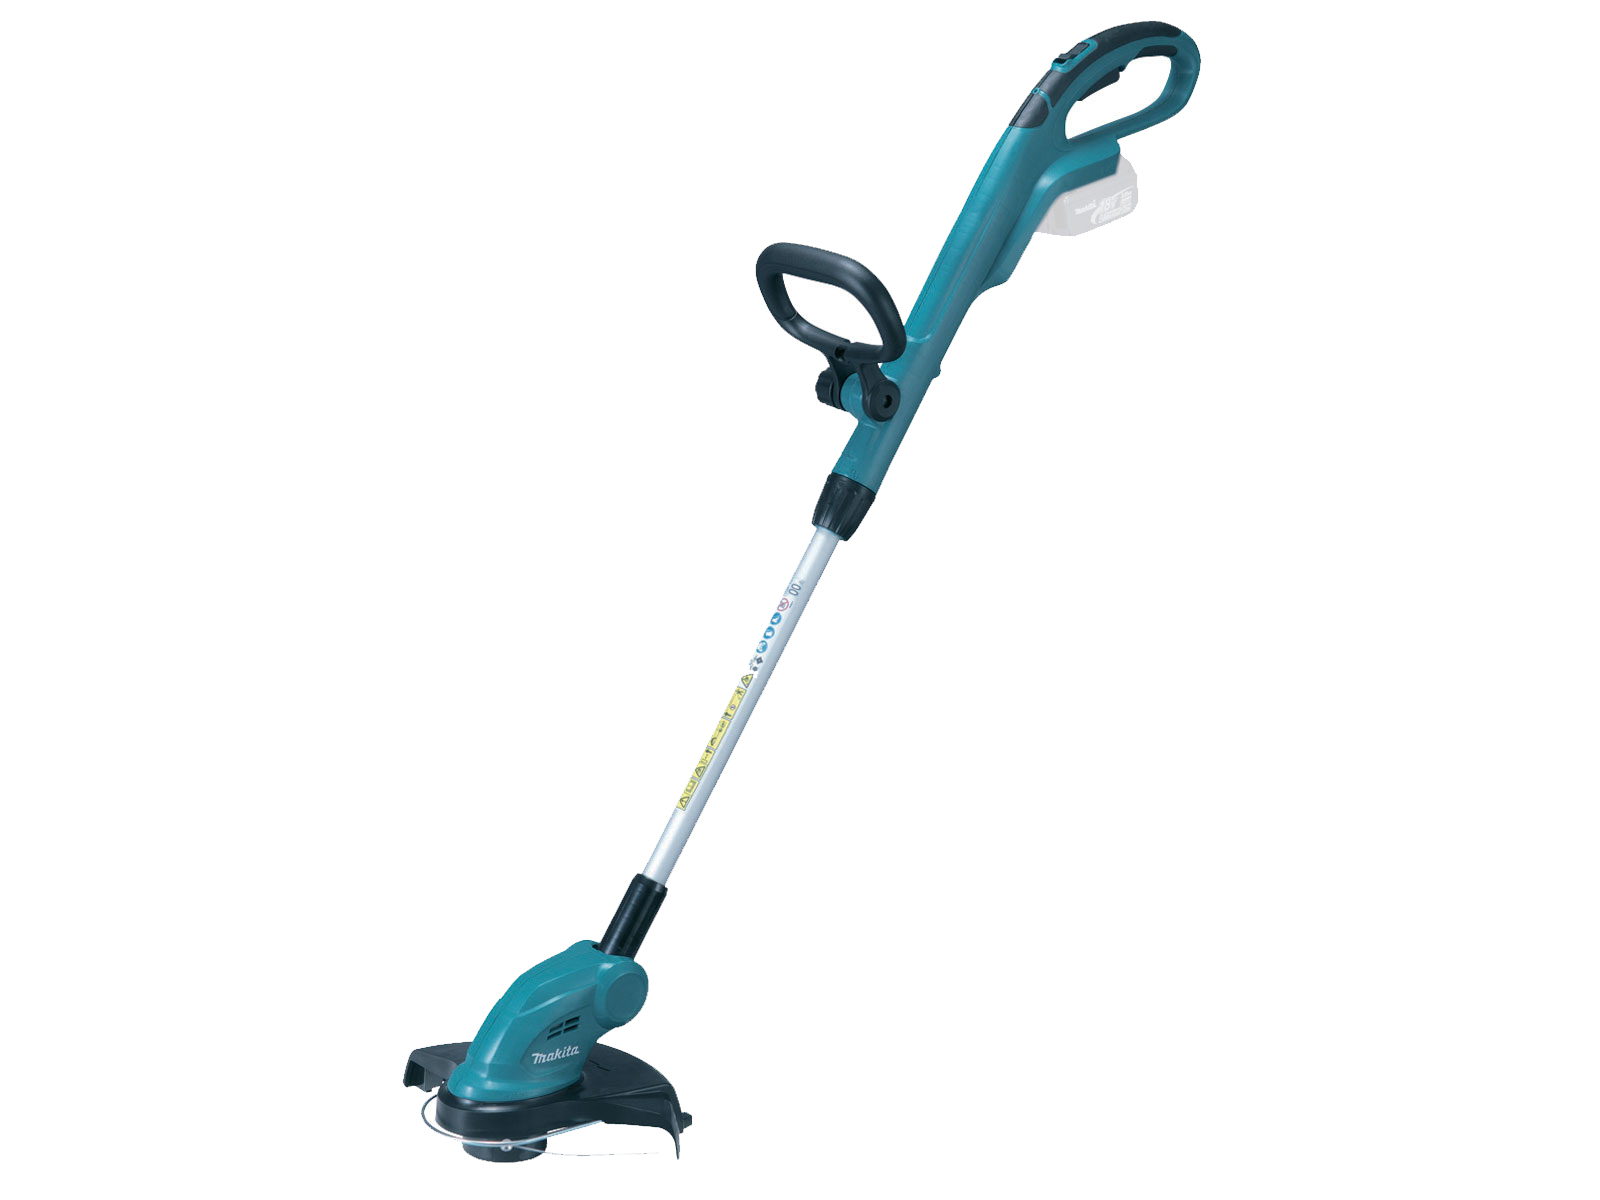 Makita 18V Brushed LXT Line Trimmer - DUR181Z - Body Only